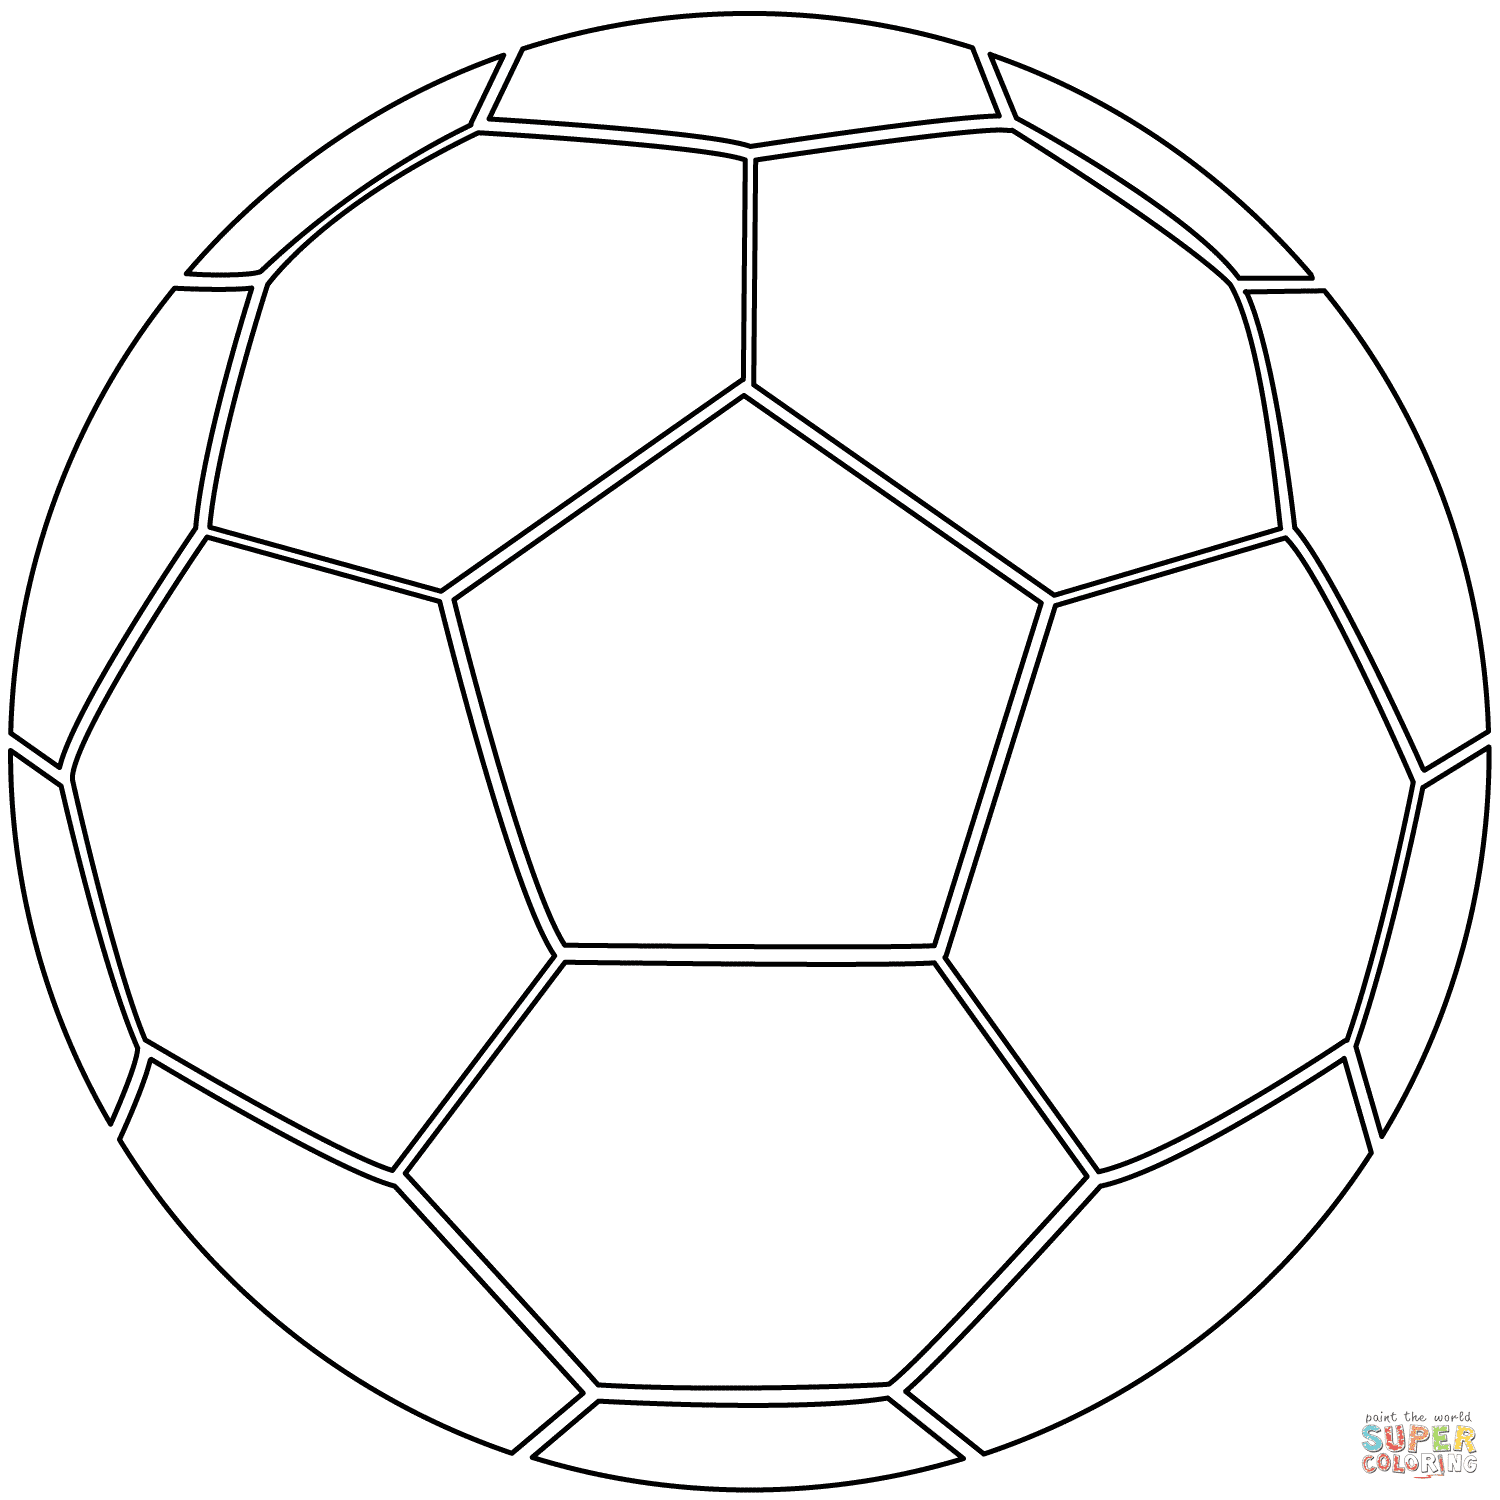 er sur la Ballon de football coloriages